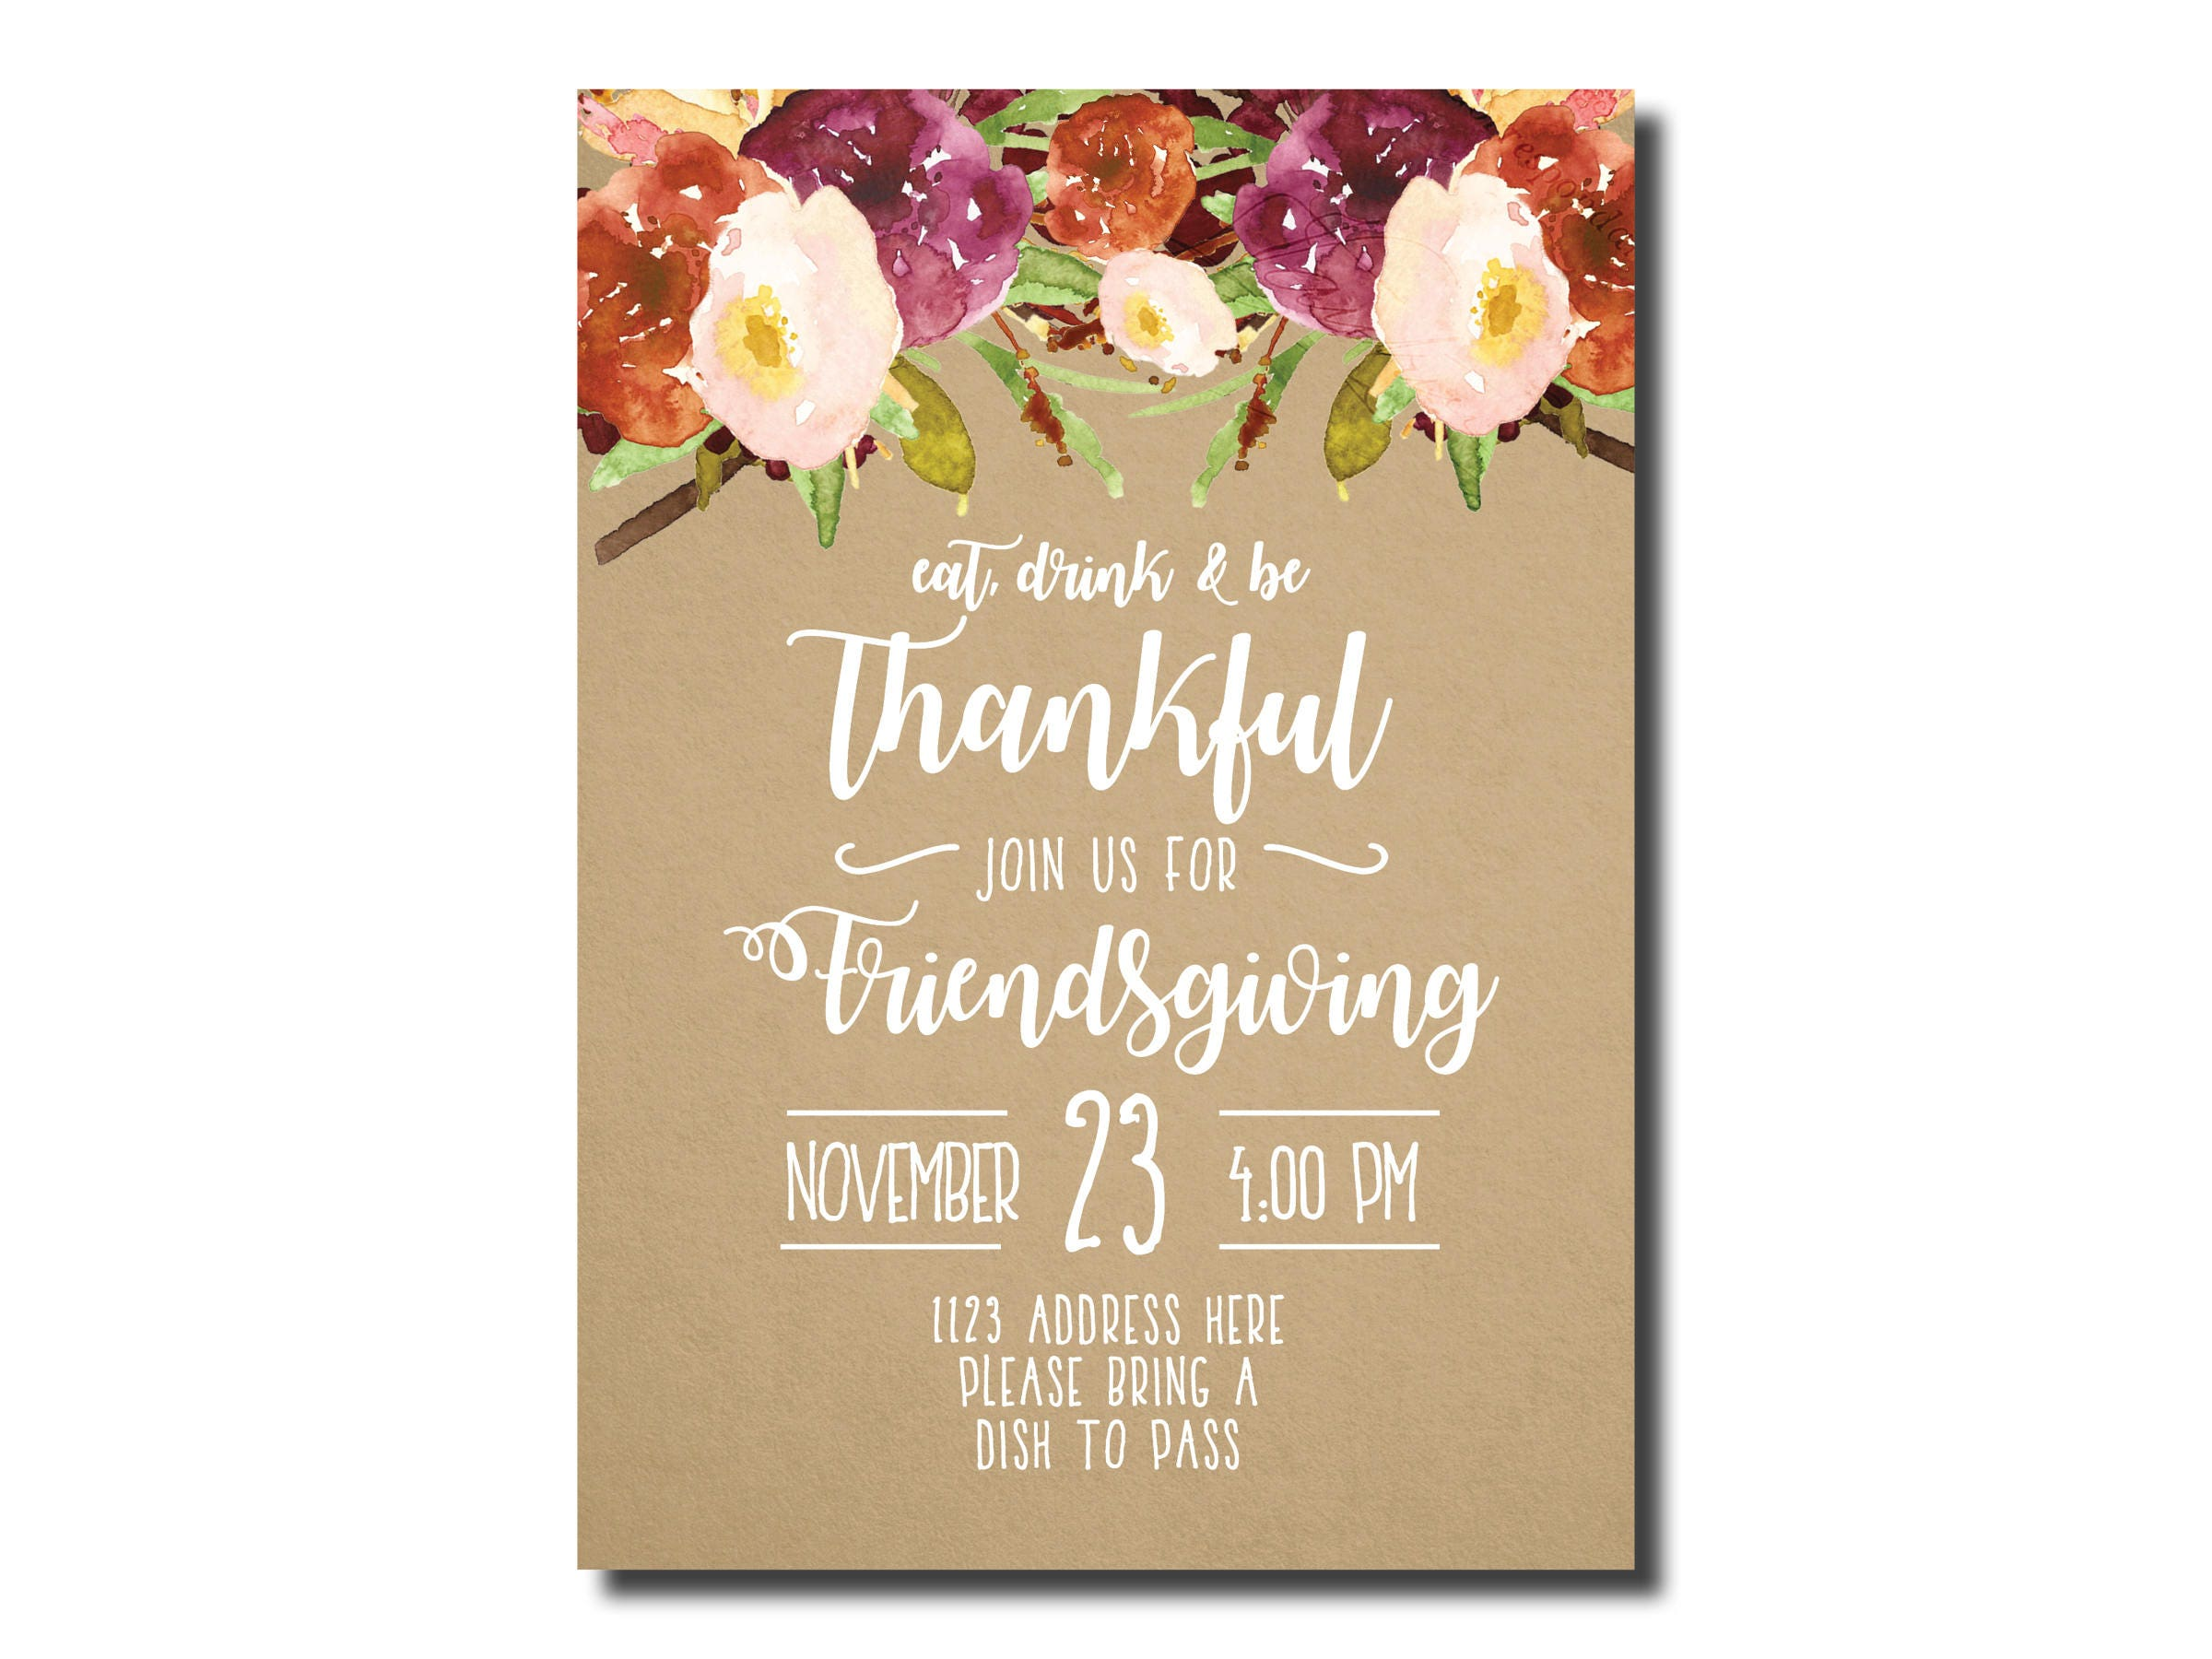 Friendsgiving Invitation Thanksgiving Invitation